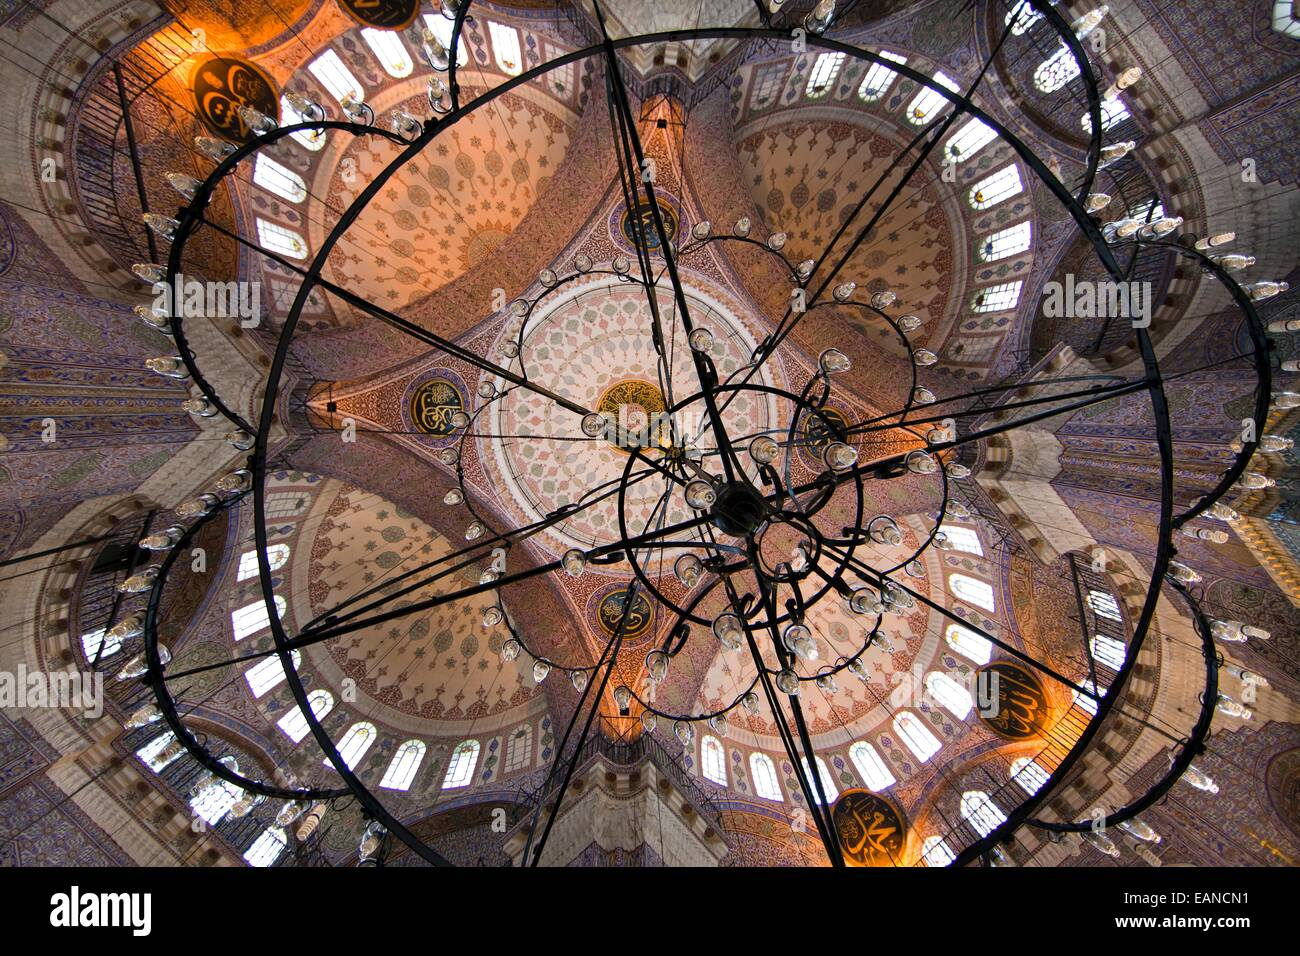 Interior of the Sultan Ahmed (Blue) mosque, Istanbul - Stock Image